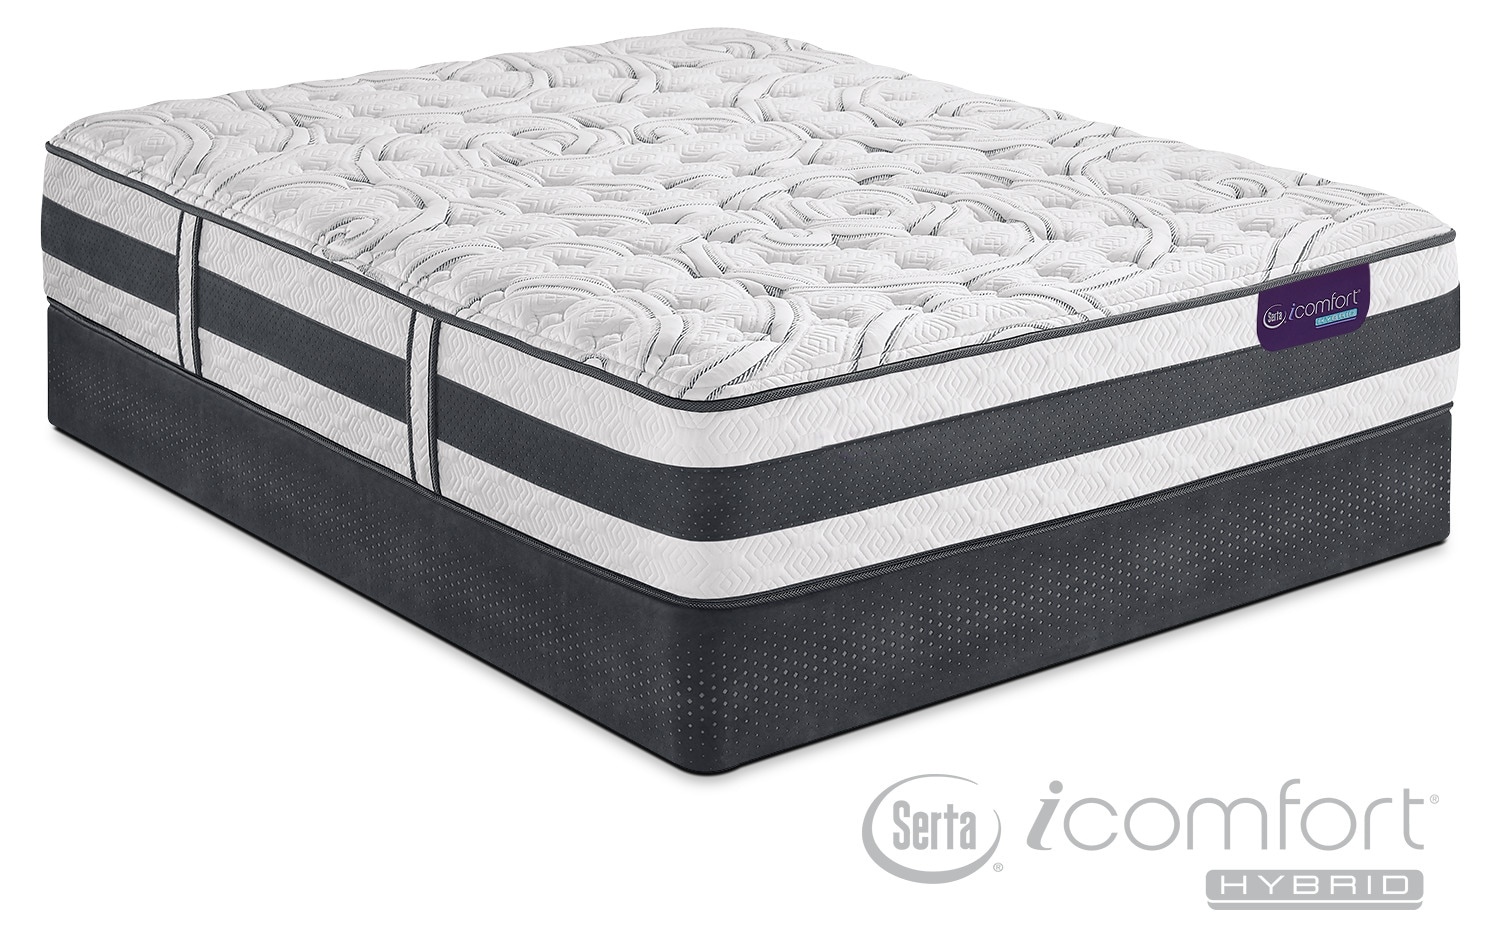 Applause Ii Firm Twin Xl Mattress And Foundation Set American Signature Furniture